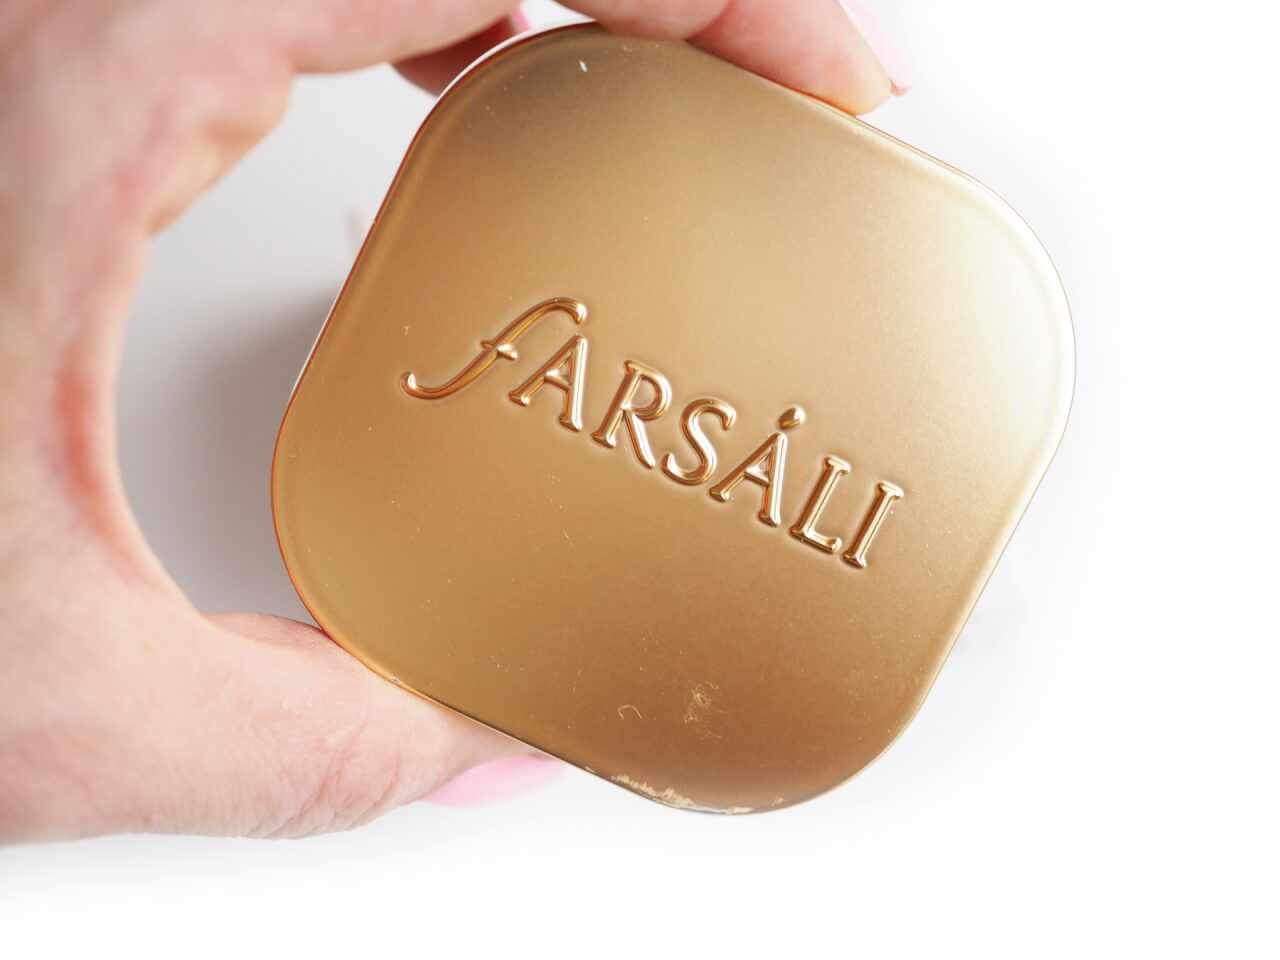 Farsali Jelly Beam Illuminator